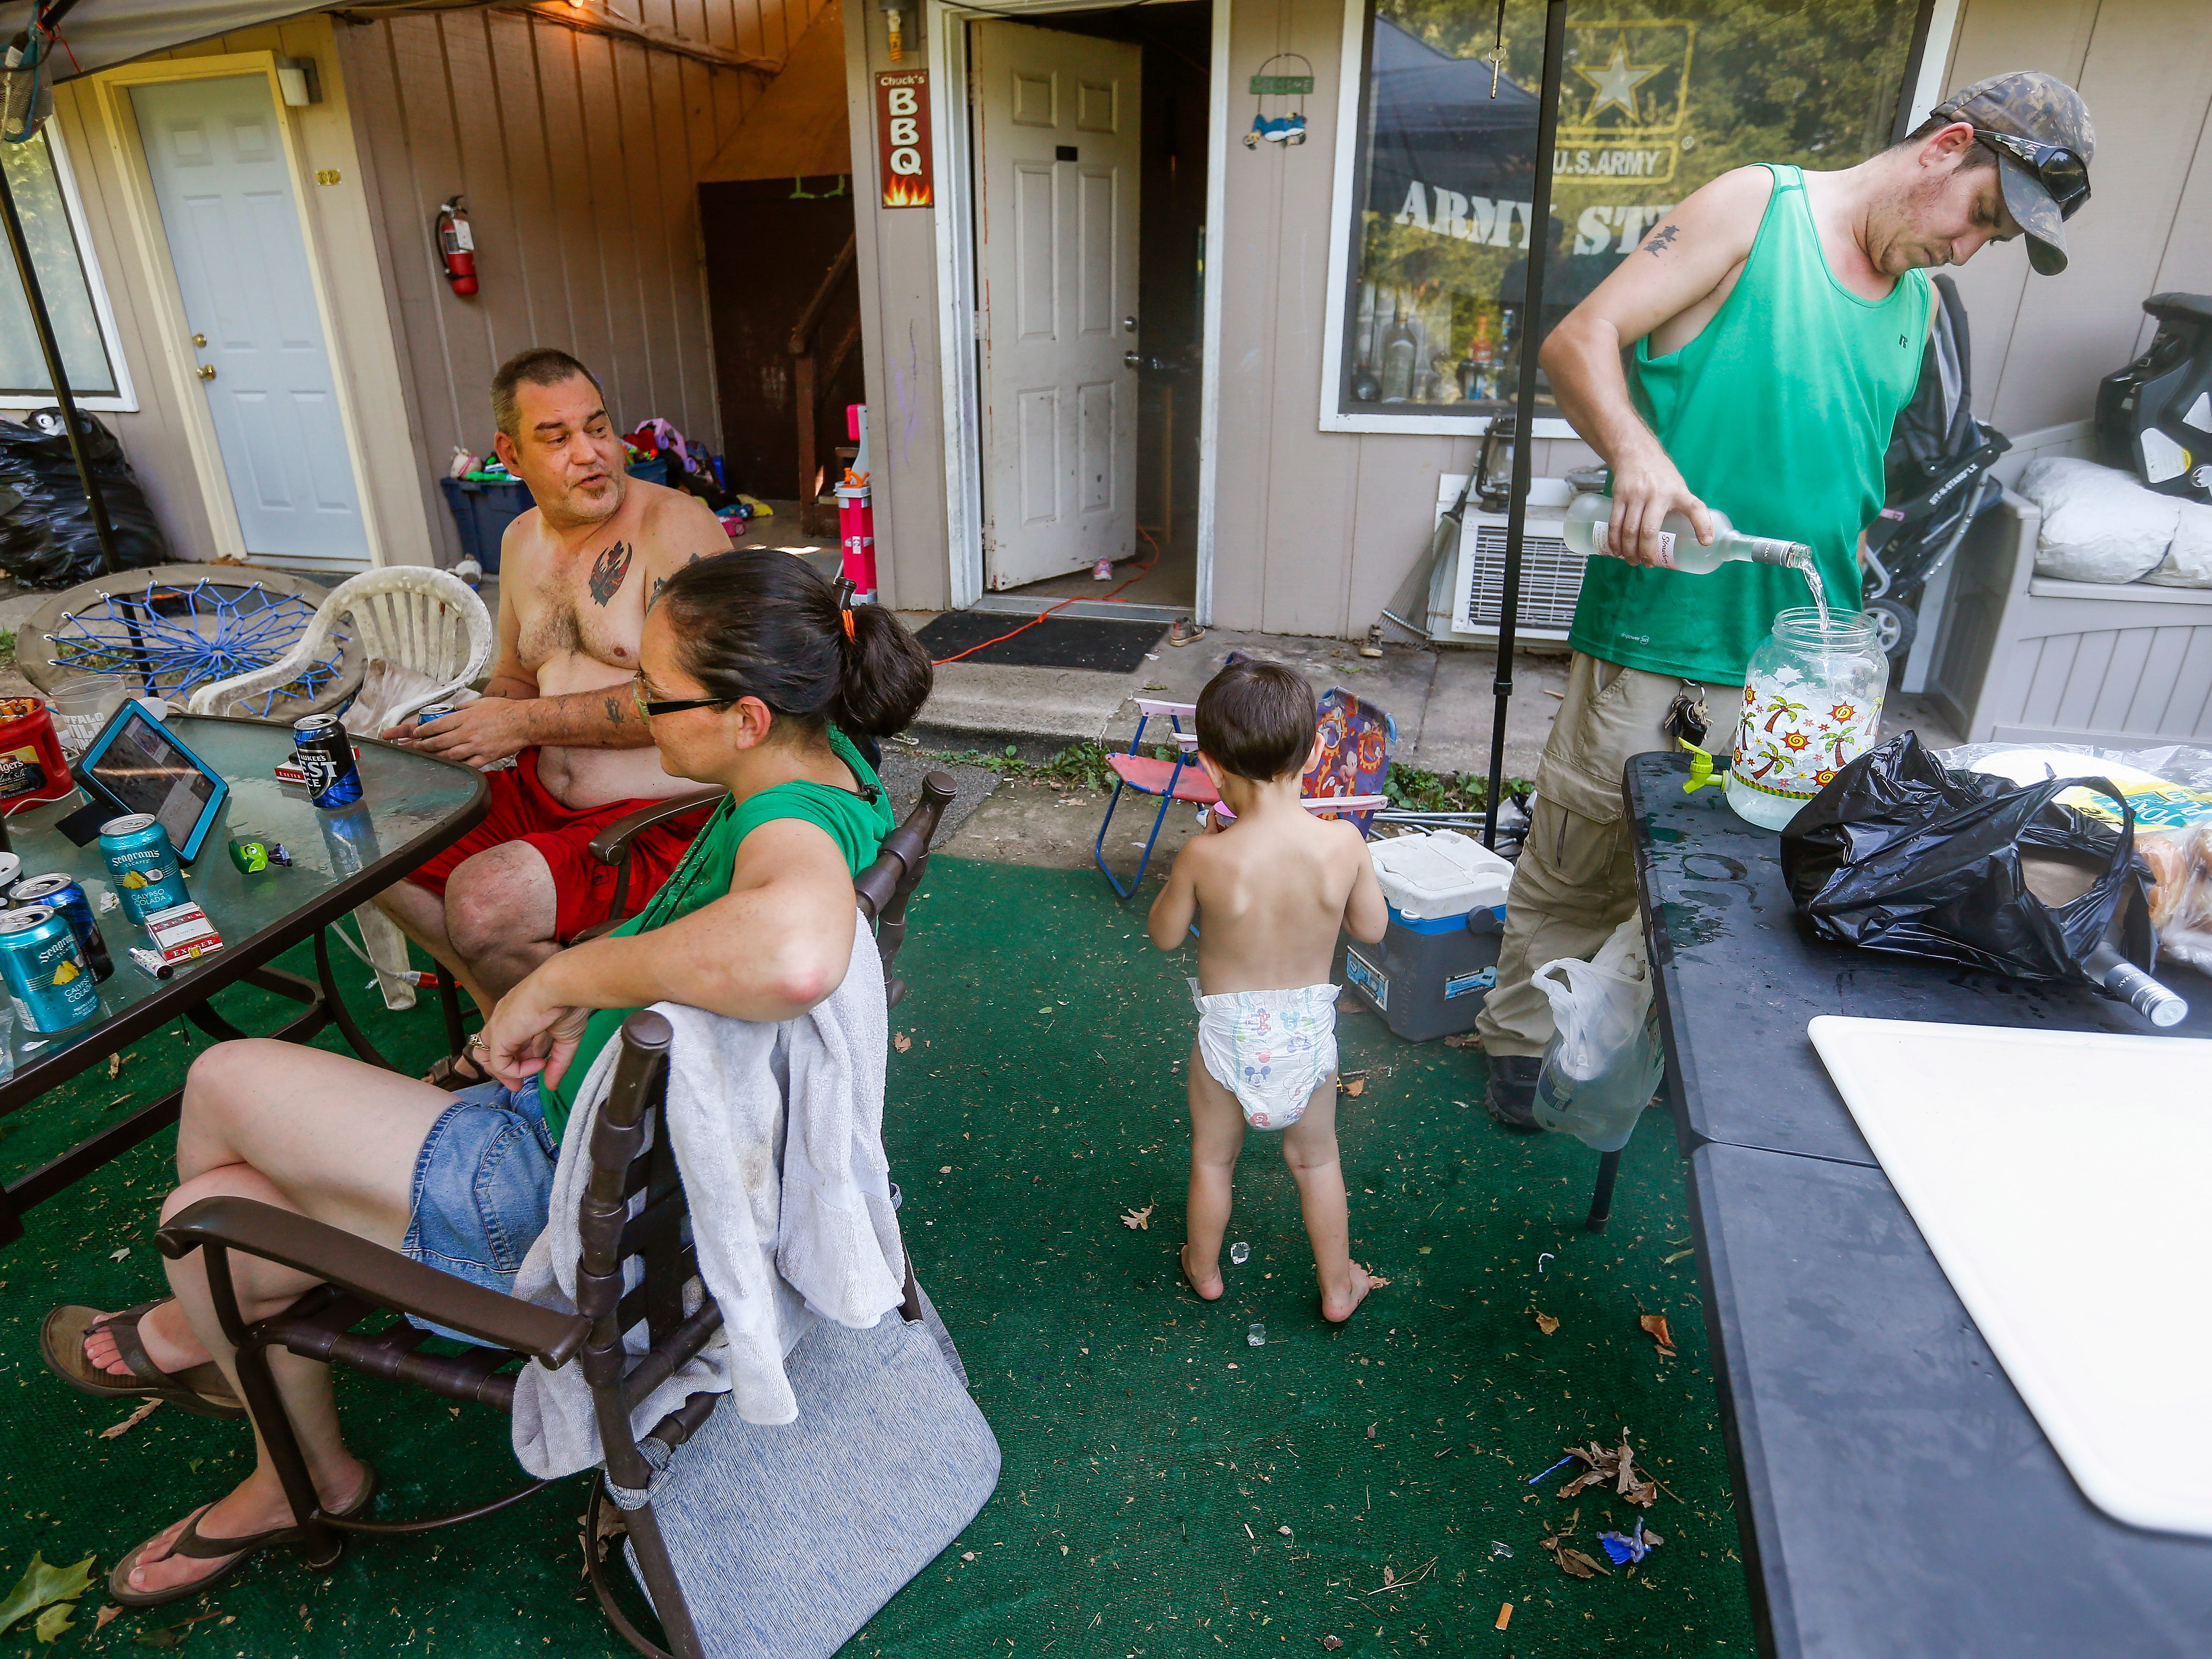 Chuck Stuedl and Amanda Norris along with their son Gabriel Norris, 3, relax as Jason Berriault mixes drinks while barbecuing and celebrating Amanda's birthday outside the extended stay hotel they live in in Branson on Friday, July 20, 2018. They spend most of their time outside their room in the outdoor seating area they created talking with friends and barbecuing.